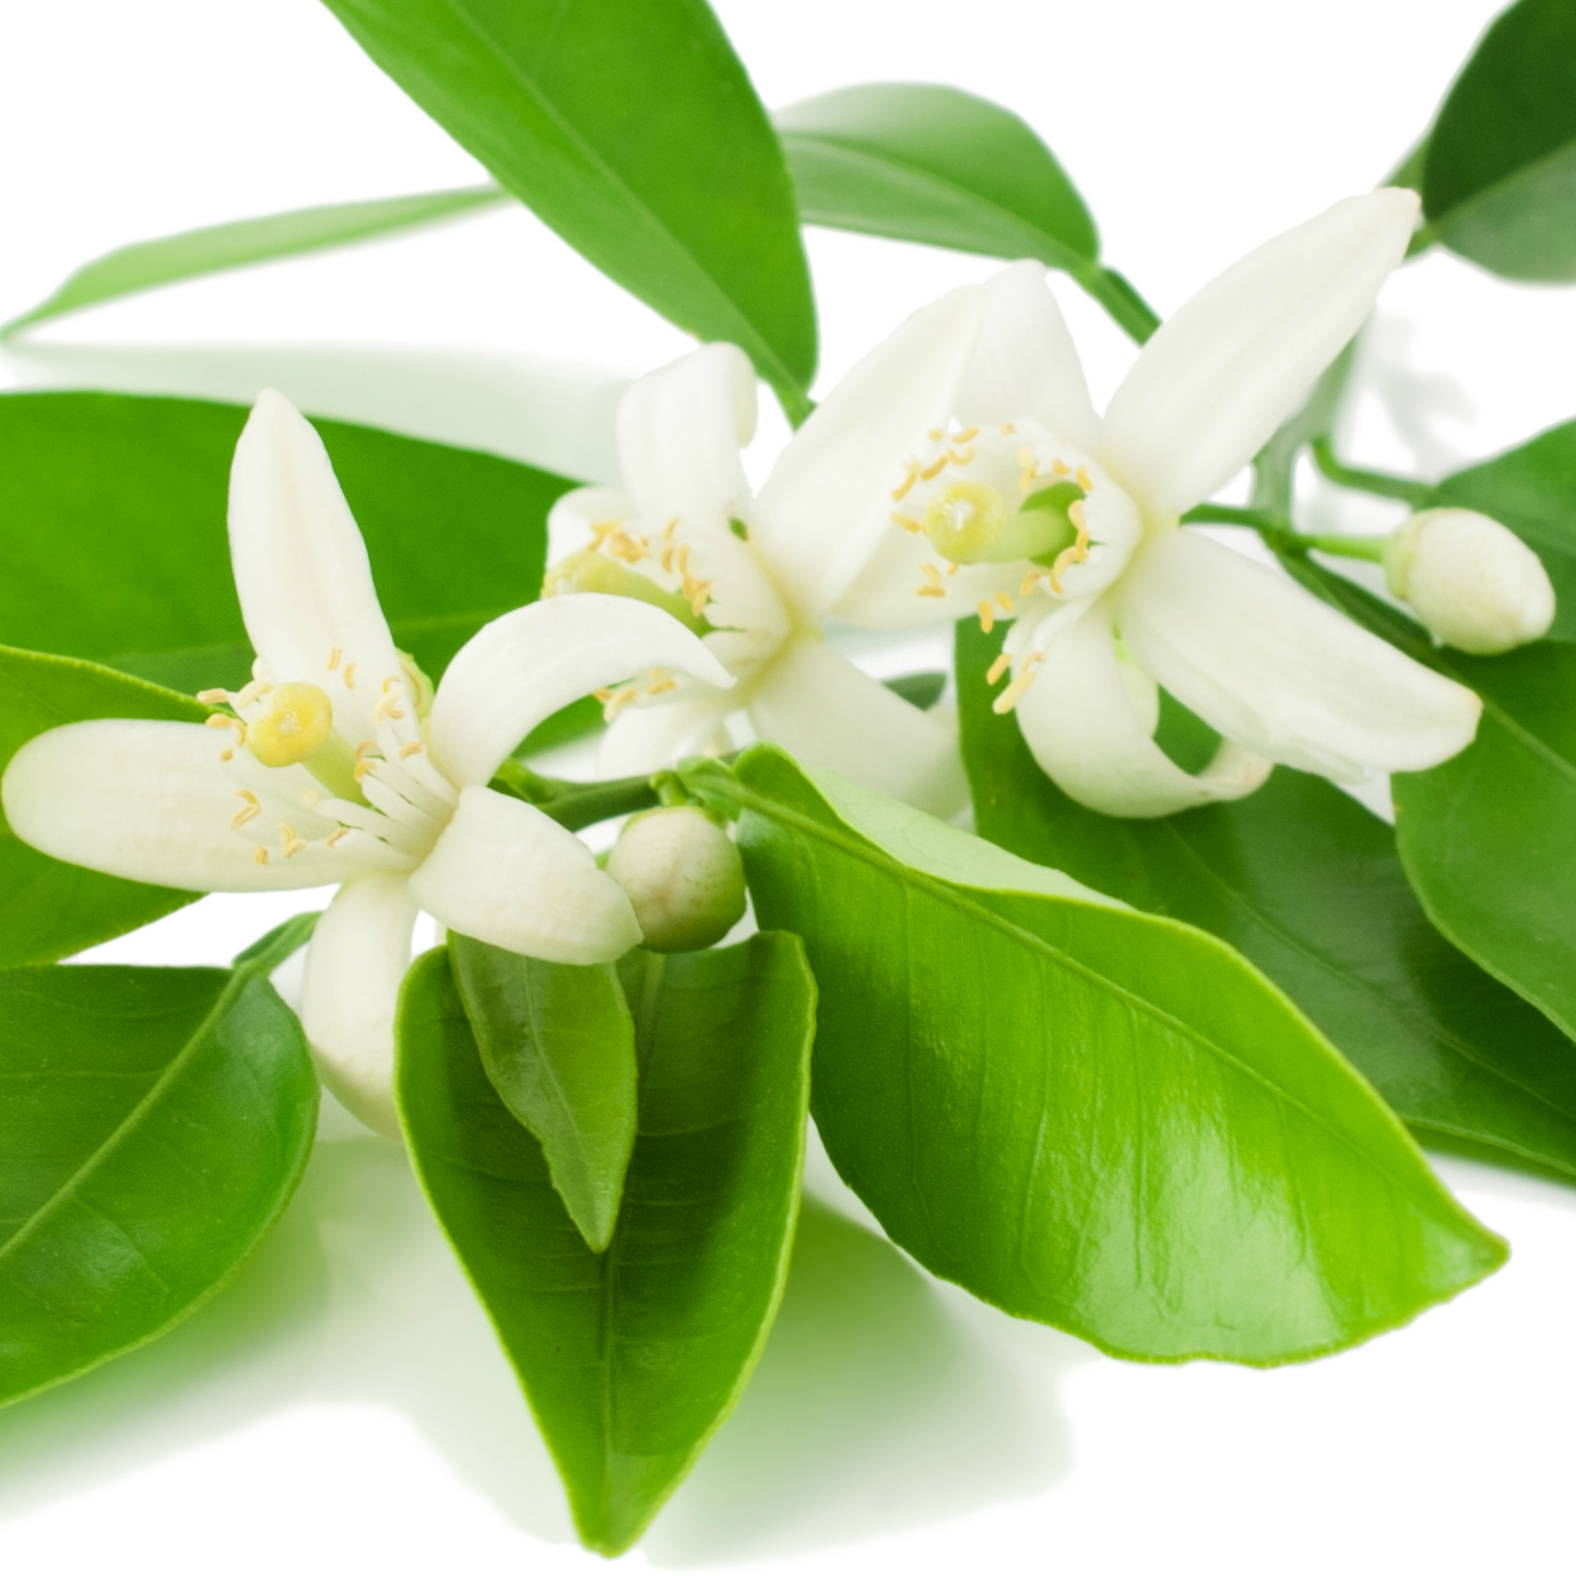 Neroli flowers, essential oil and hydrosol.